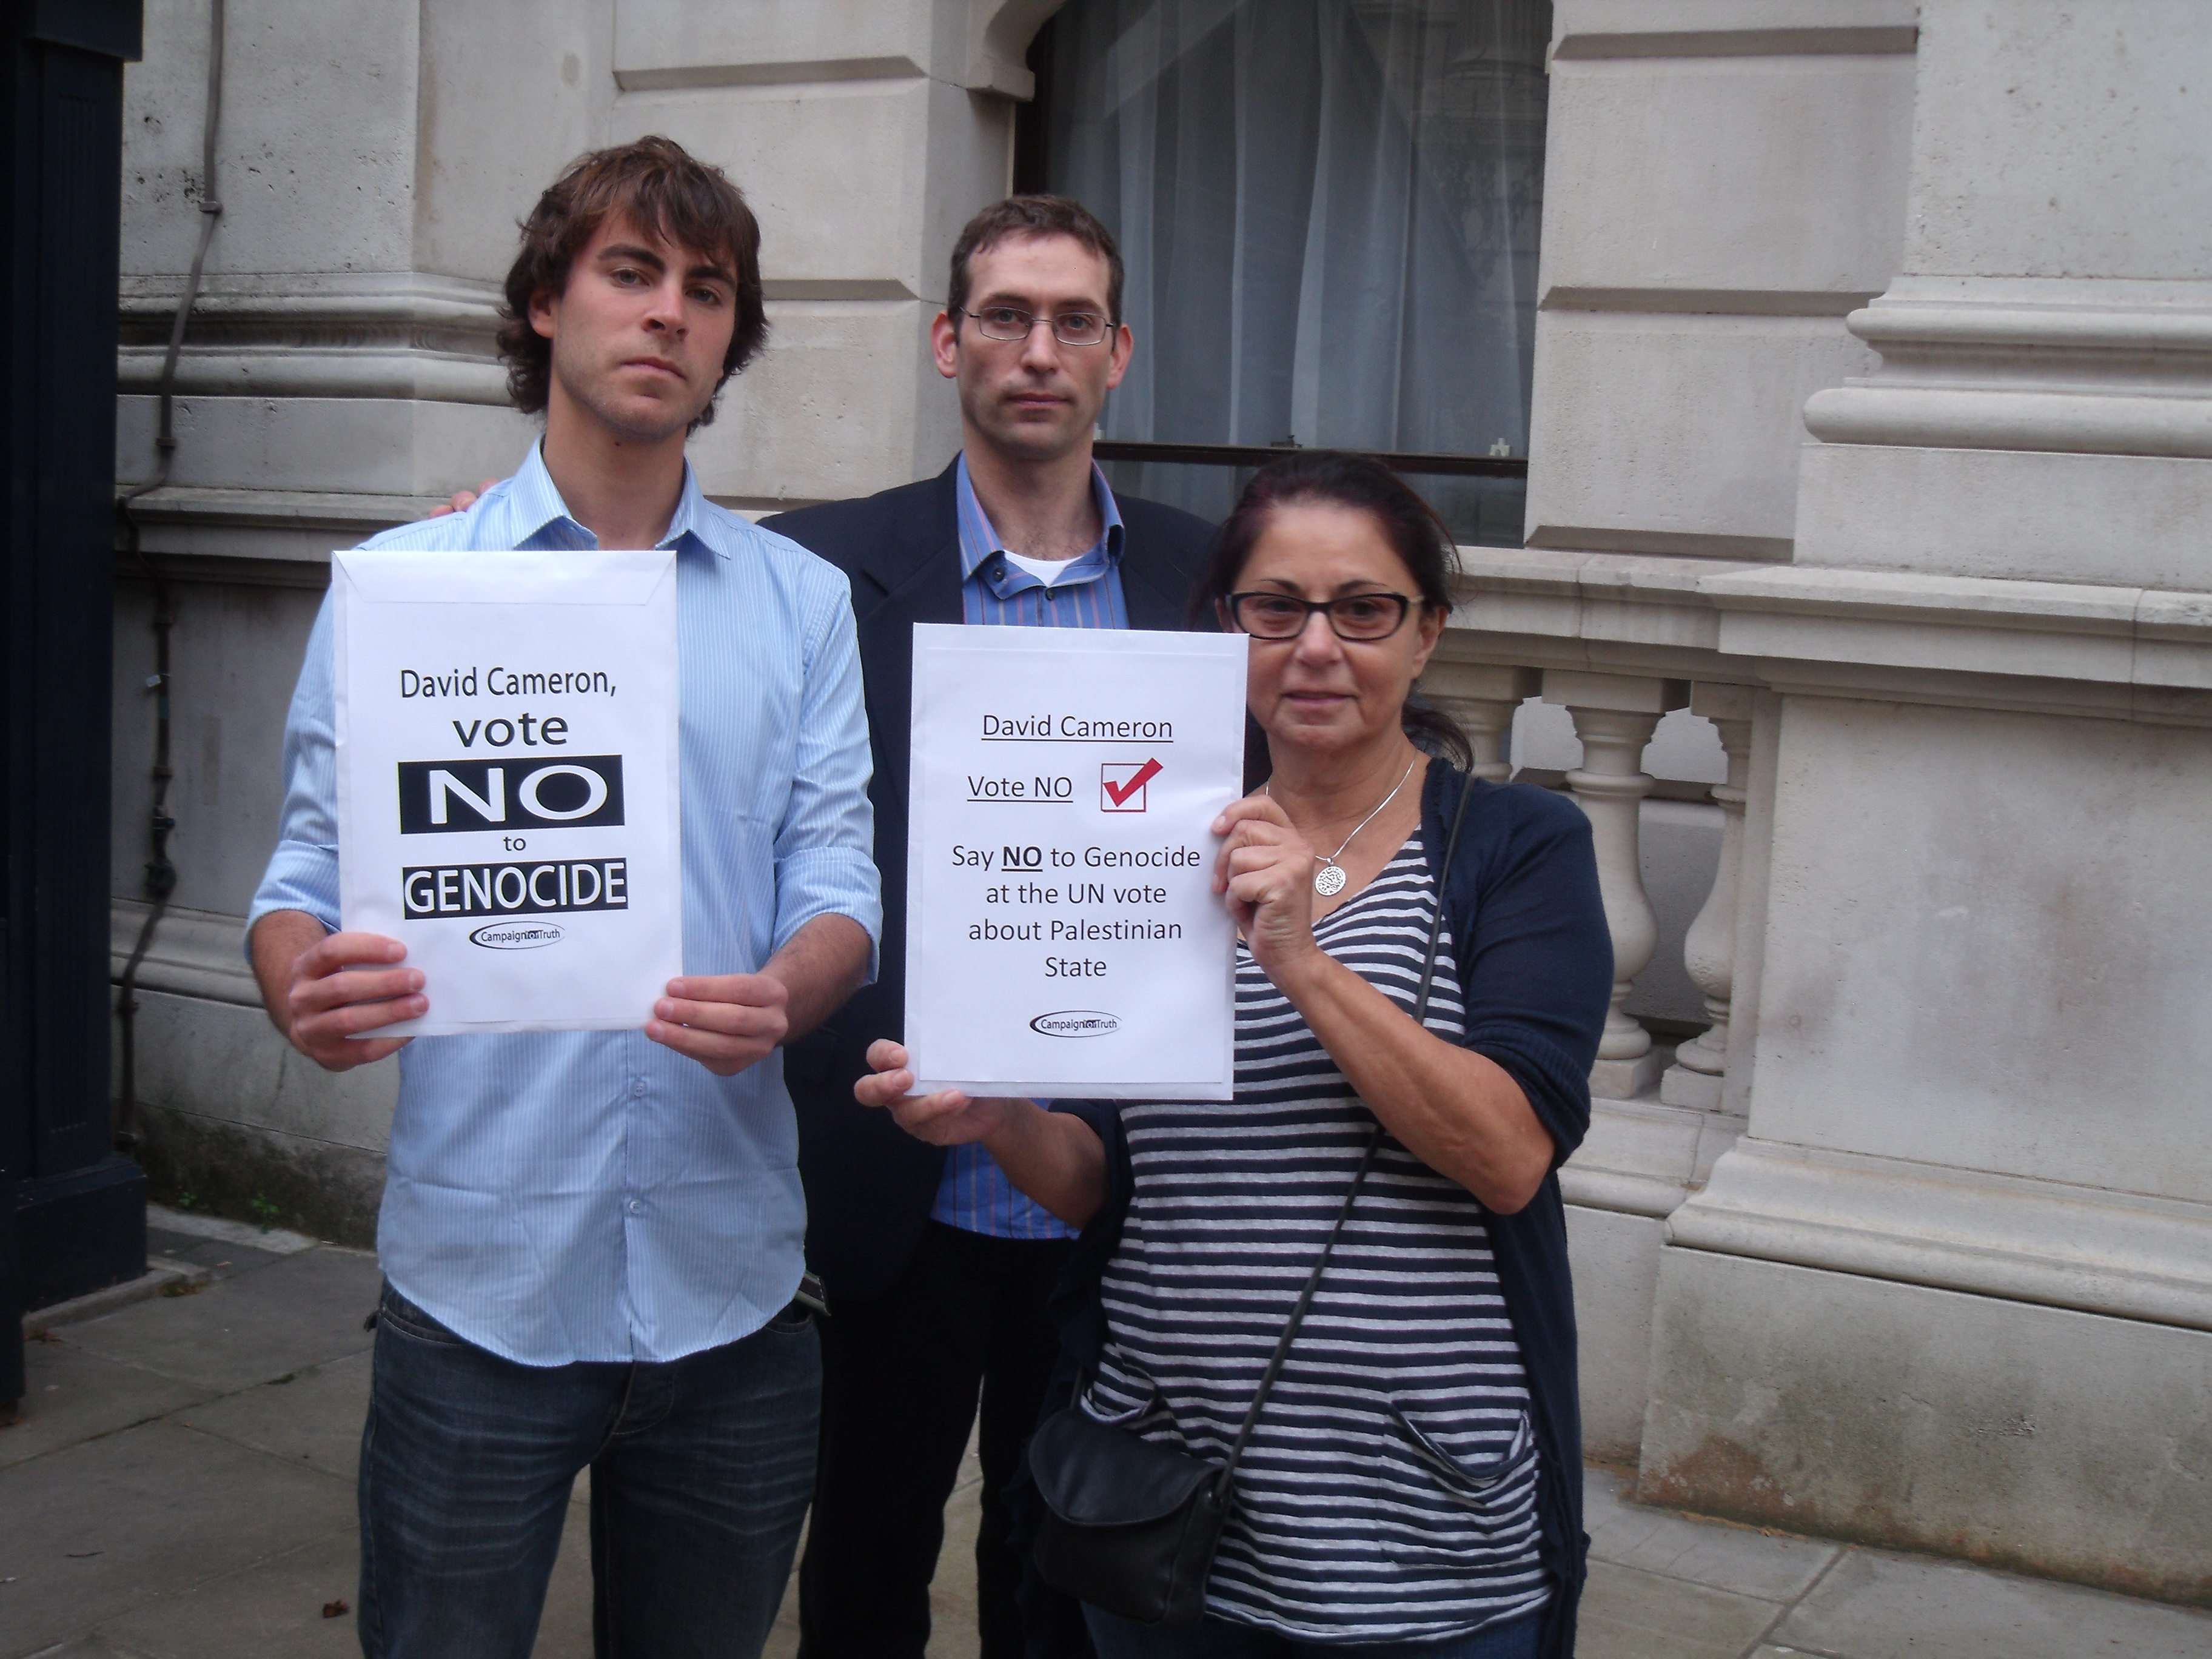 Uk muslims press for peace at 10 downing street - Roy Benjamin And Sharon Of C4t On Downing Street